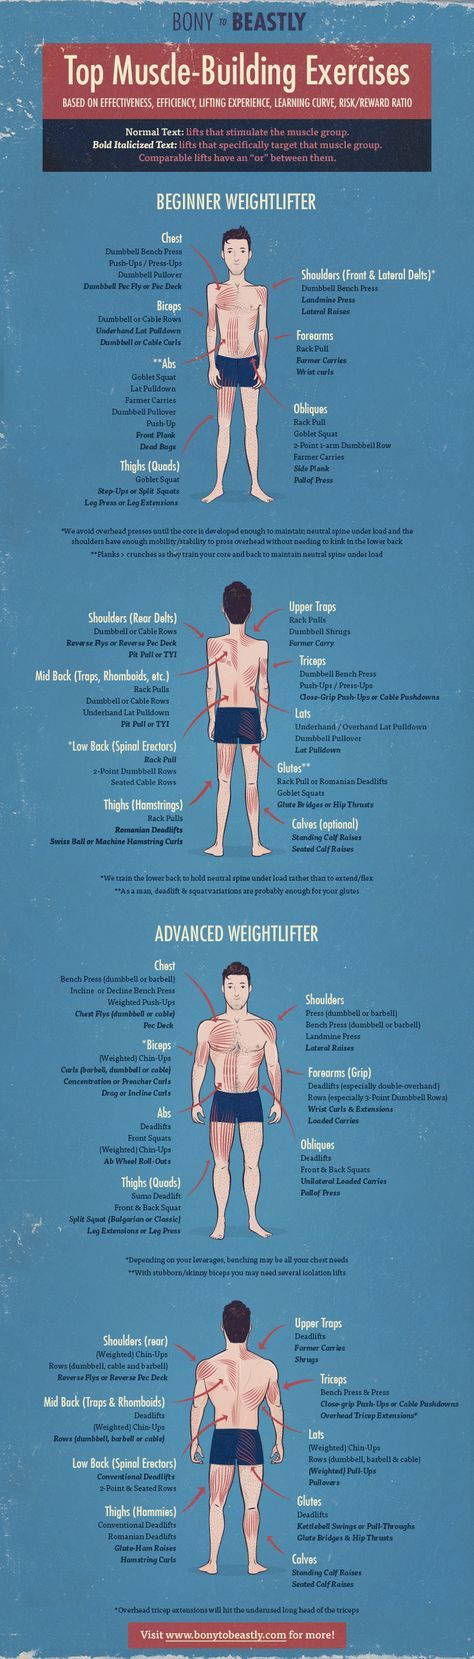 The best exercises for building muscle broken down by muscle group.